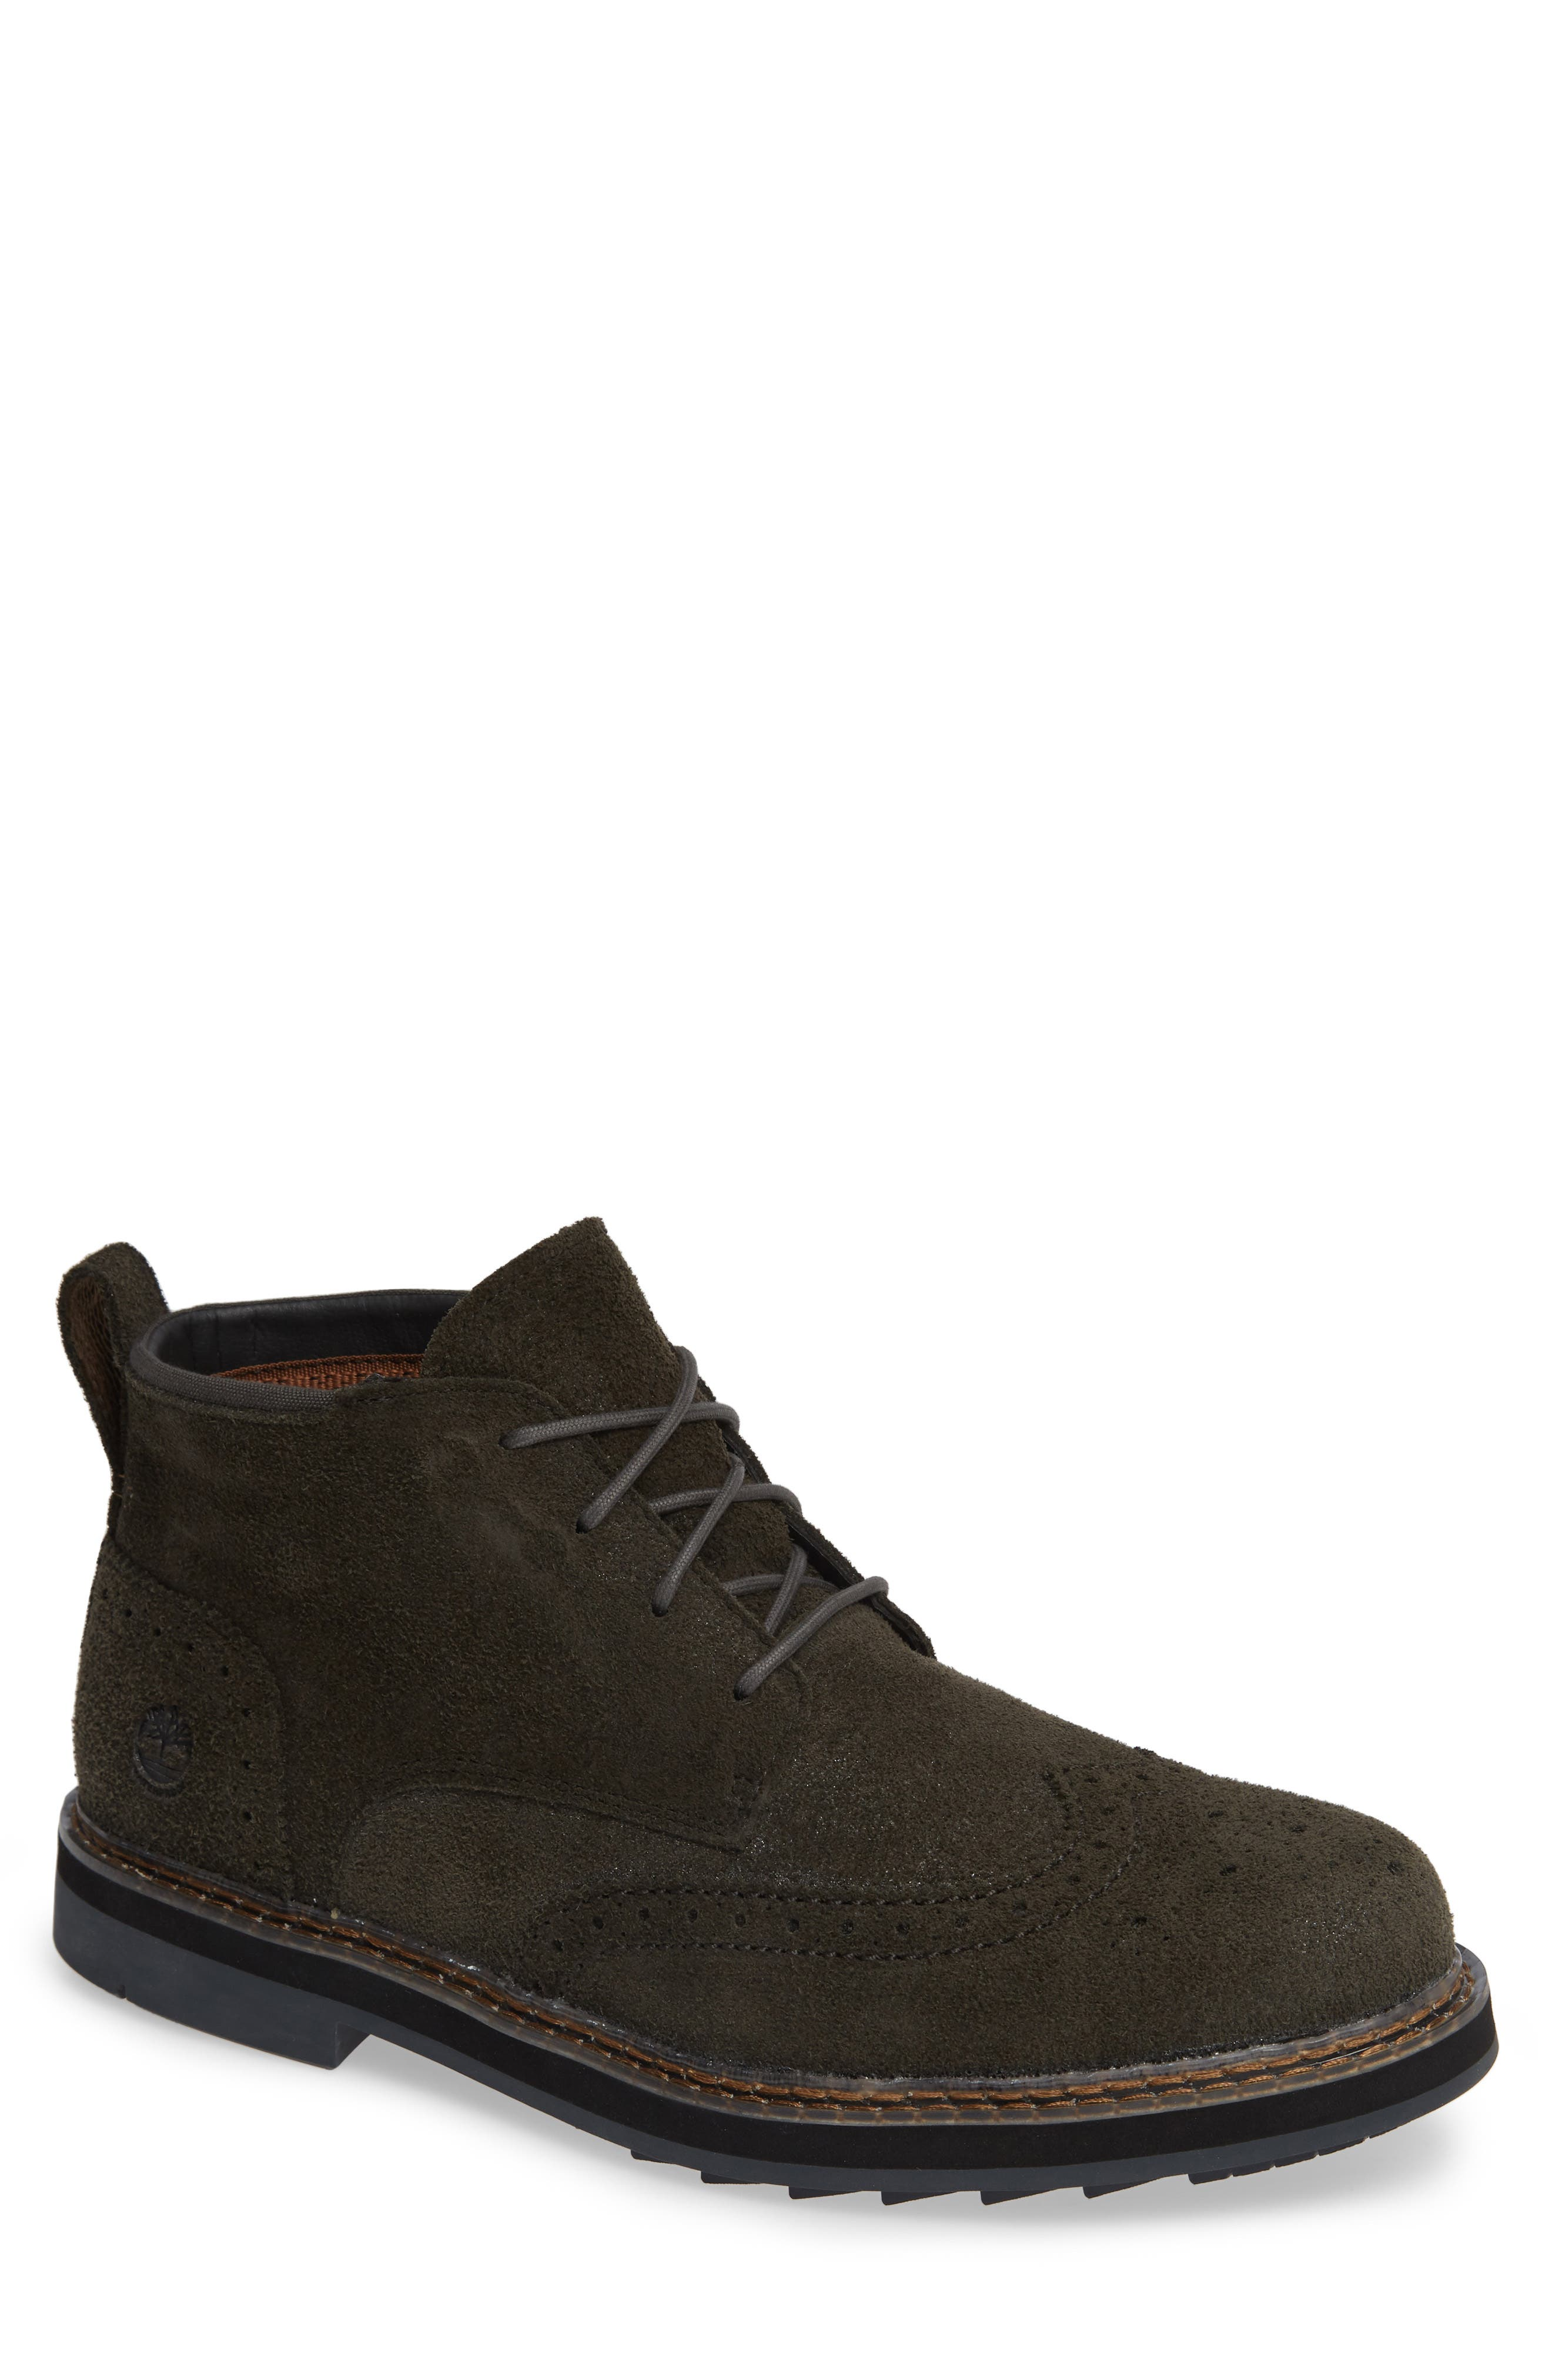 Squall Canyon Waterproof Wingtip Chukka Boot,                         Main,                         color, VINTAGE GREEN SUEDE